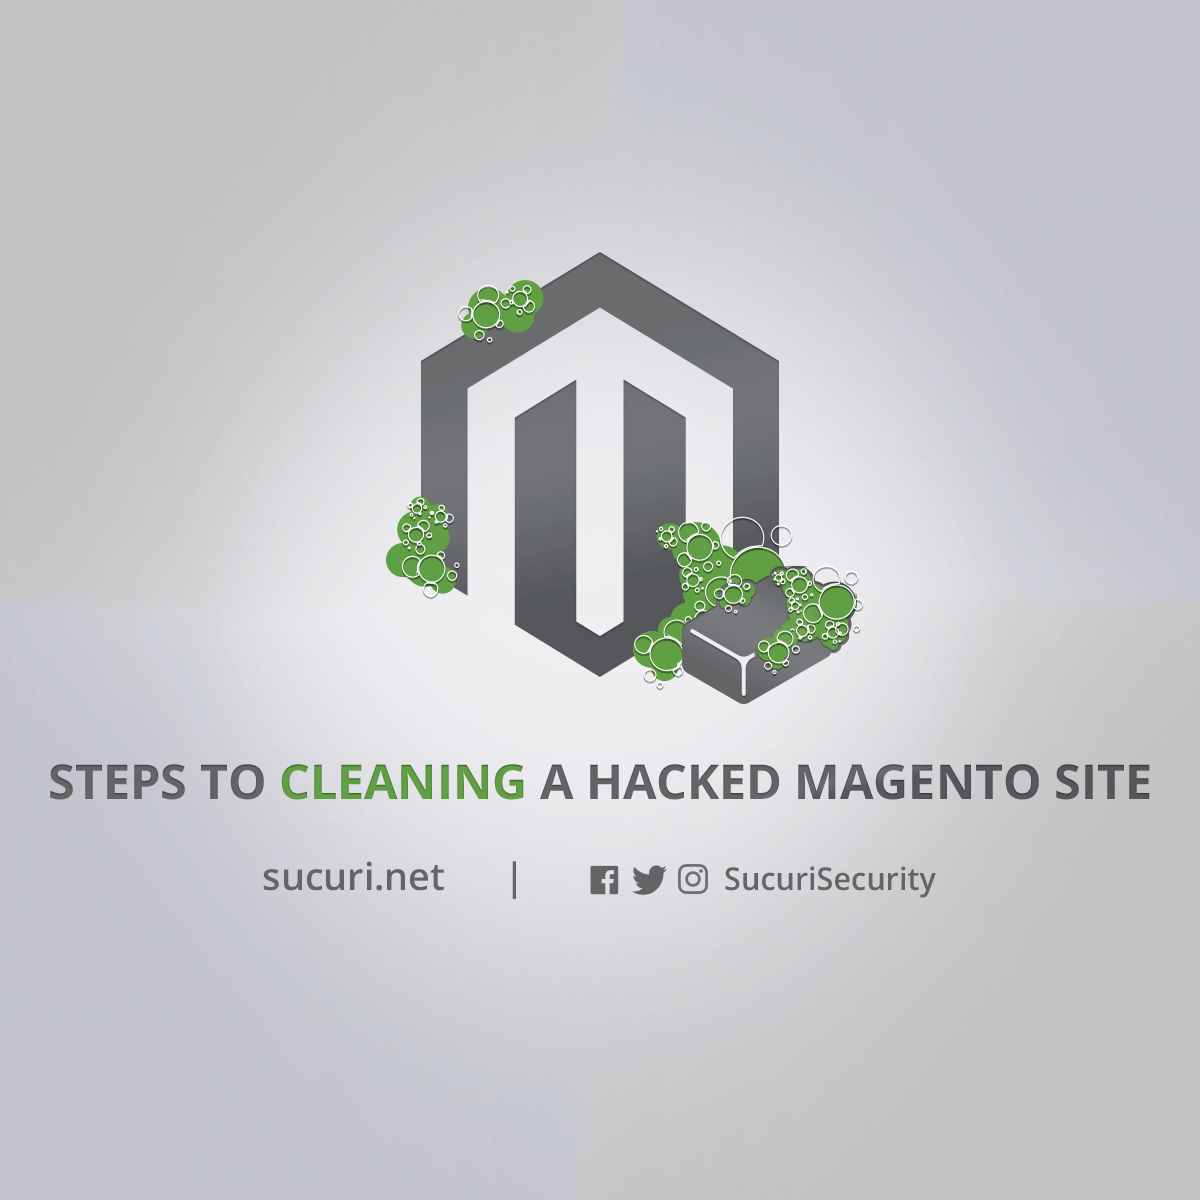 sucurisecurity: How to Clean a Hacked #Magento Site https://t.co/hTluTLFziZ #MagentoImagine